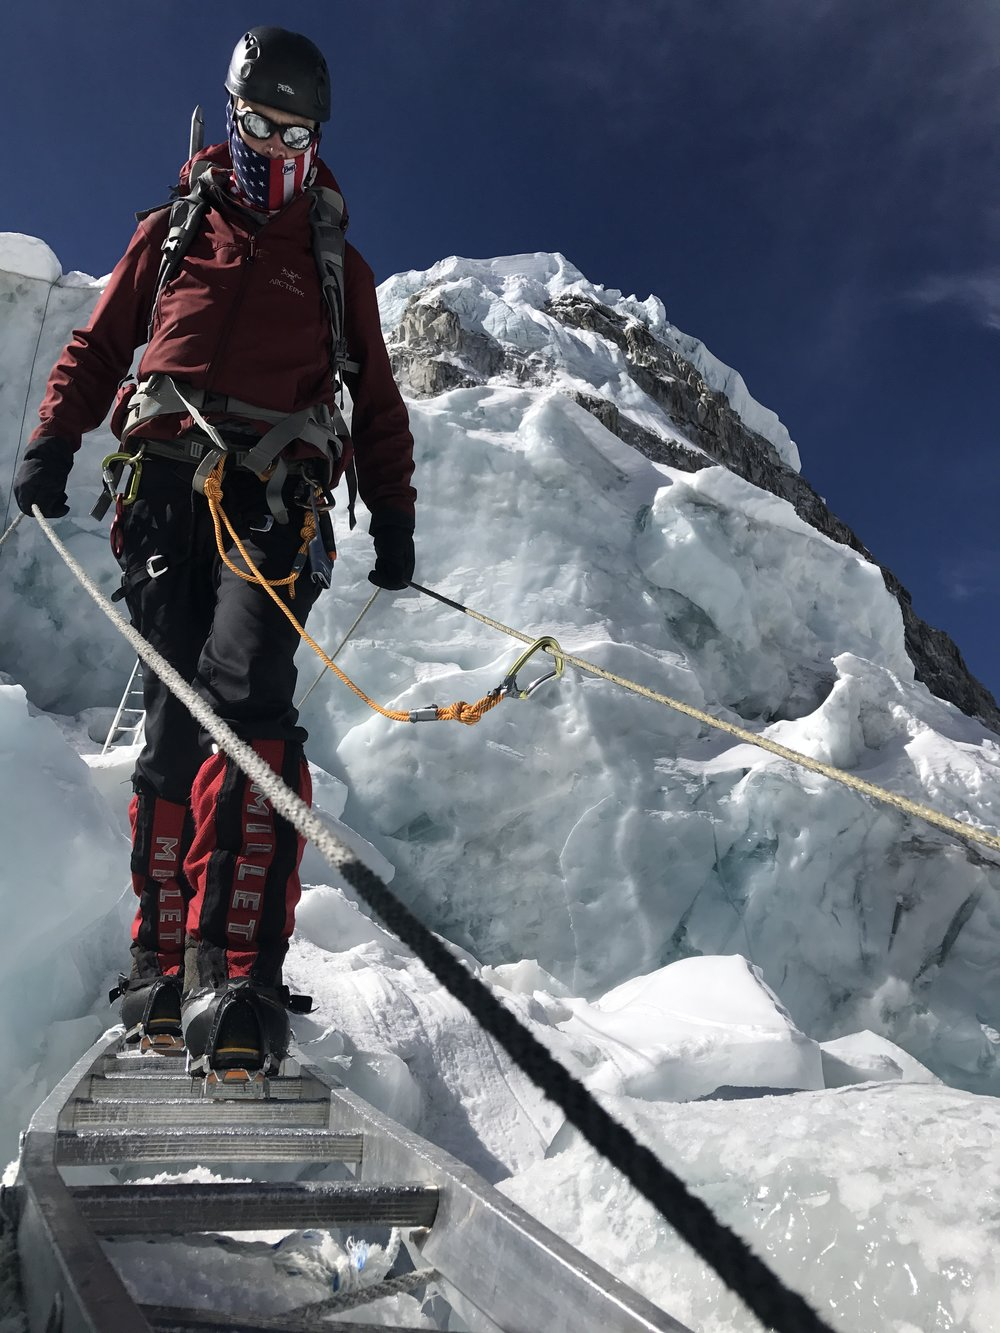 Crossing a crevasse in the Icefall (photo credit Luke Reilly)